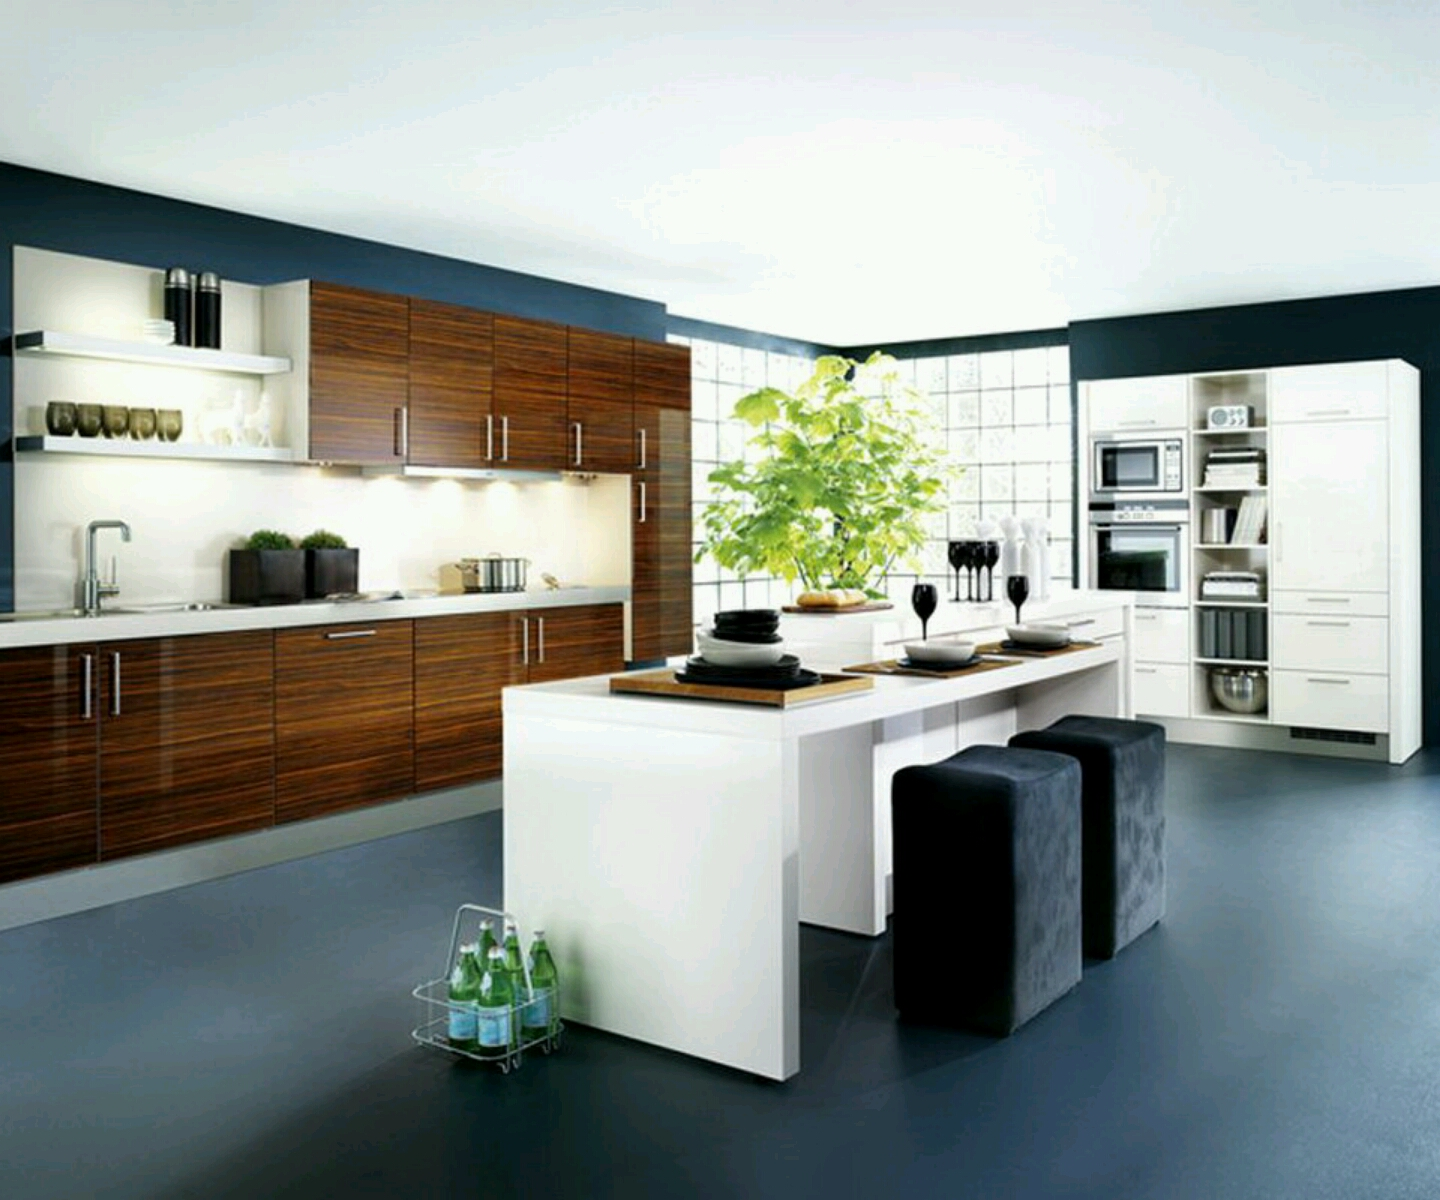 New home designs latest kitchen cabinets designs modern for New style kitchen design